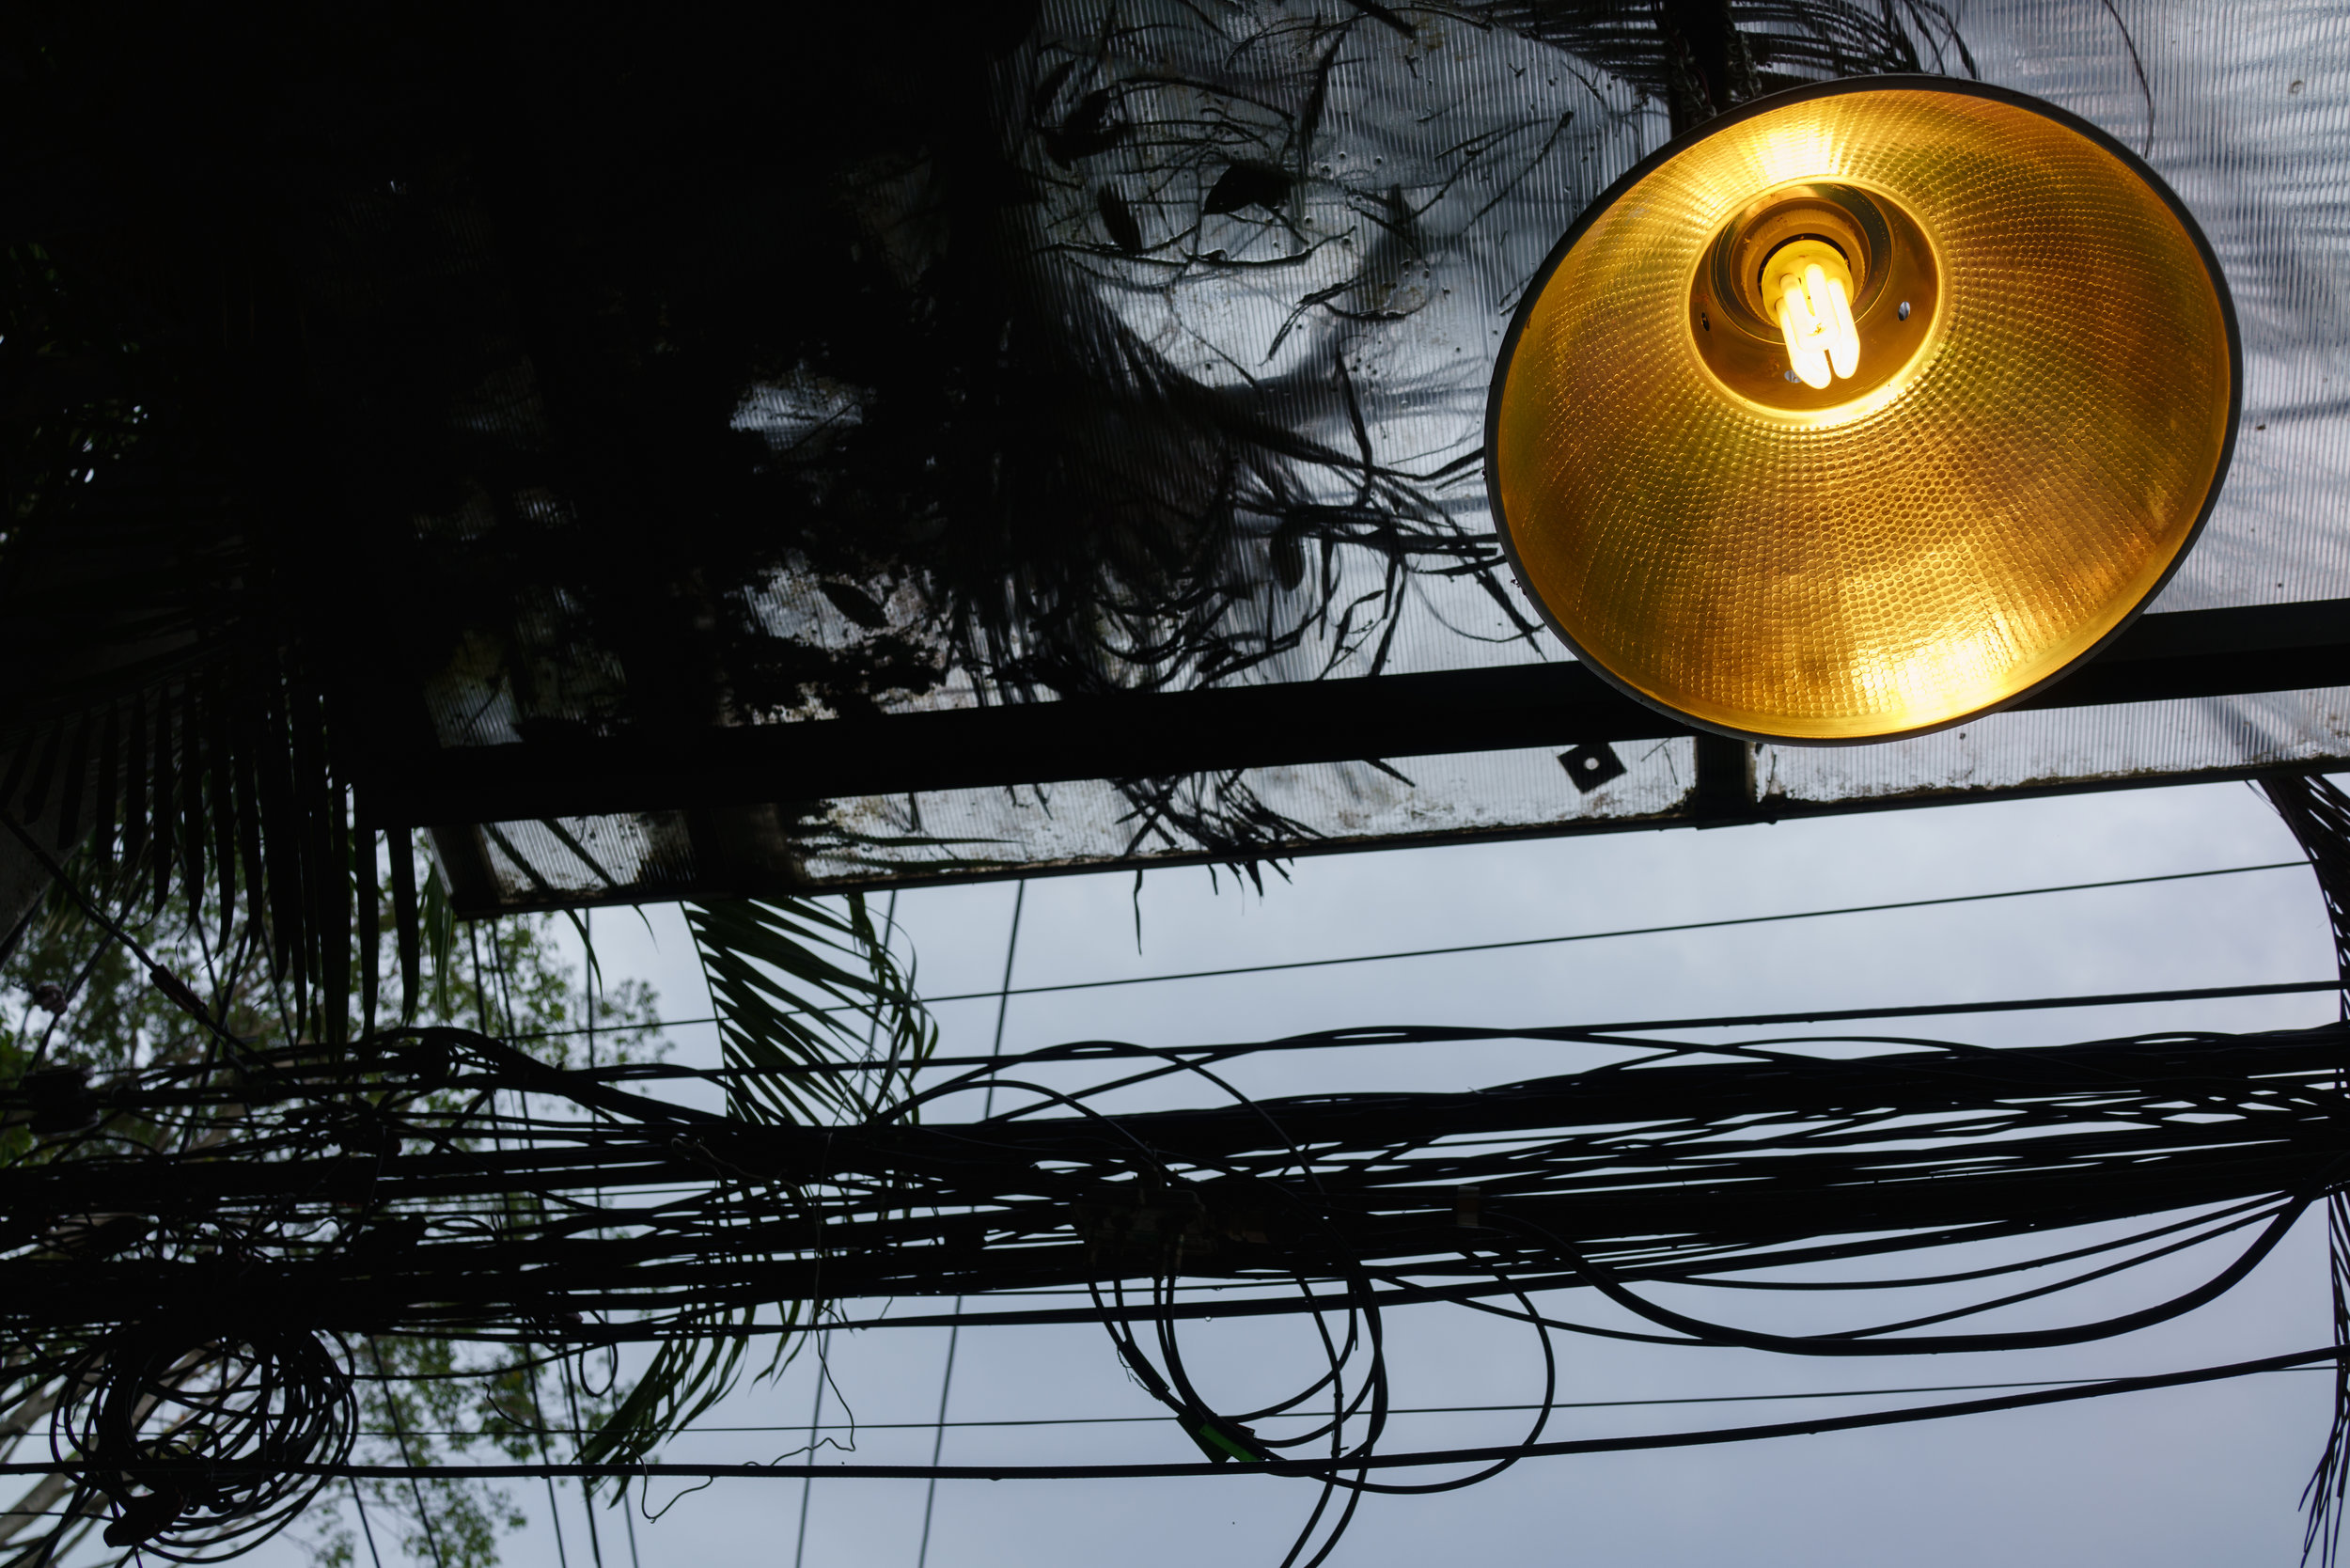 Chiang Mai's precarious entanglements, as seen from Nine-one Coffee's outdoor seating